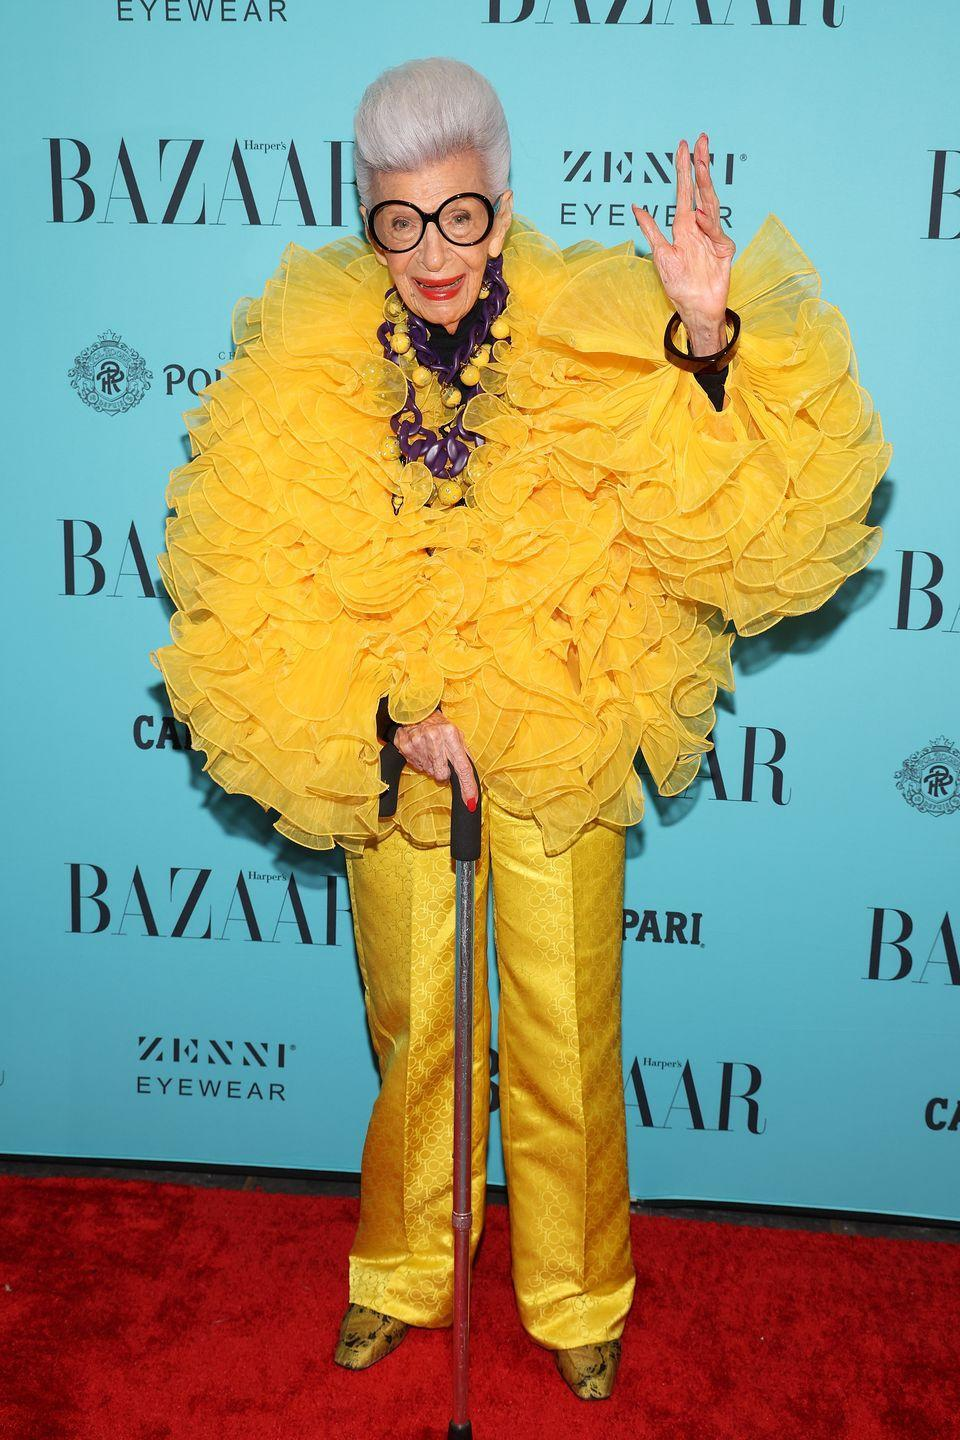 <p><strong>9 September</strong></p><p>Iris Apfel attended a NYFW celebration of her 100th birthday wearing a bright yellow ensemble.</p>